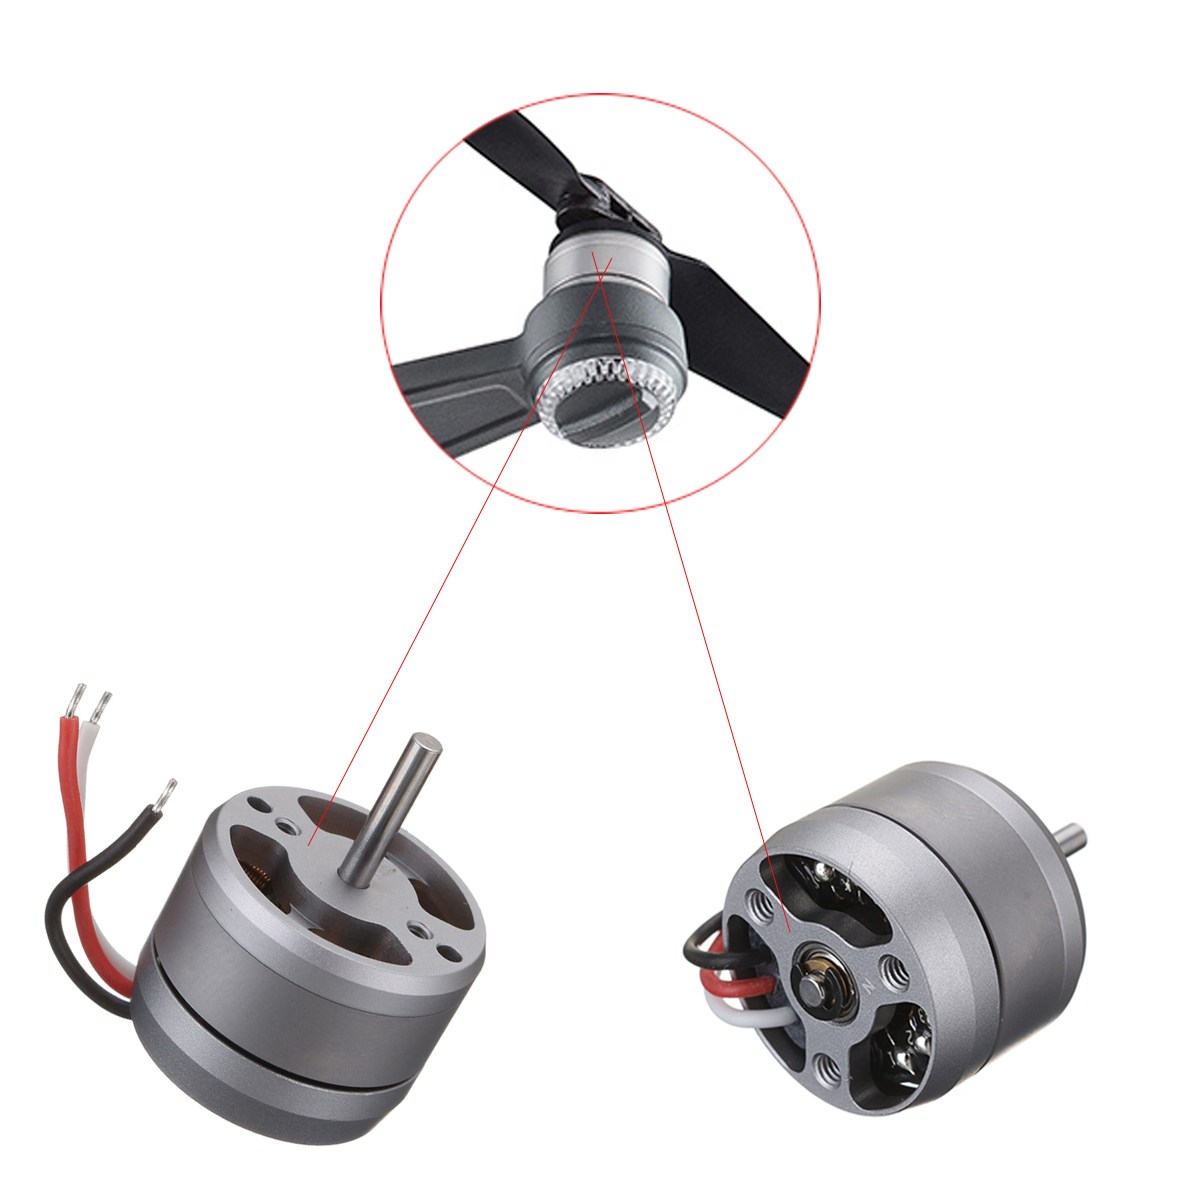 Mini Bare Motor Brushless Repair Part Accessories For DJI Spark Rc Drone